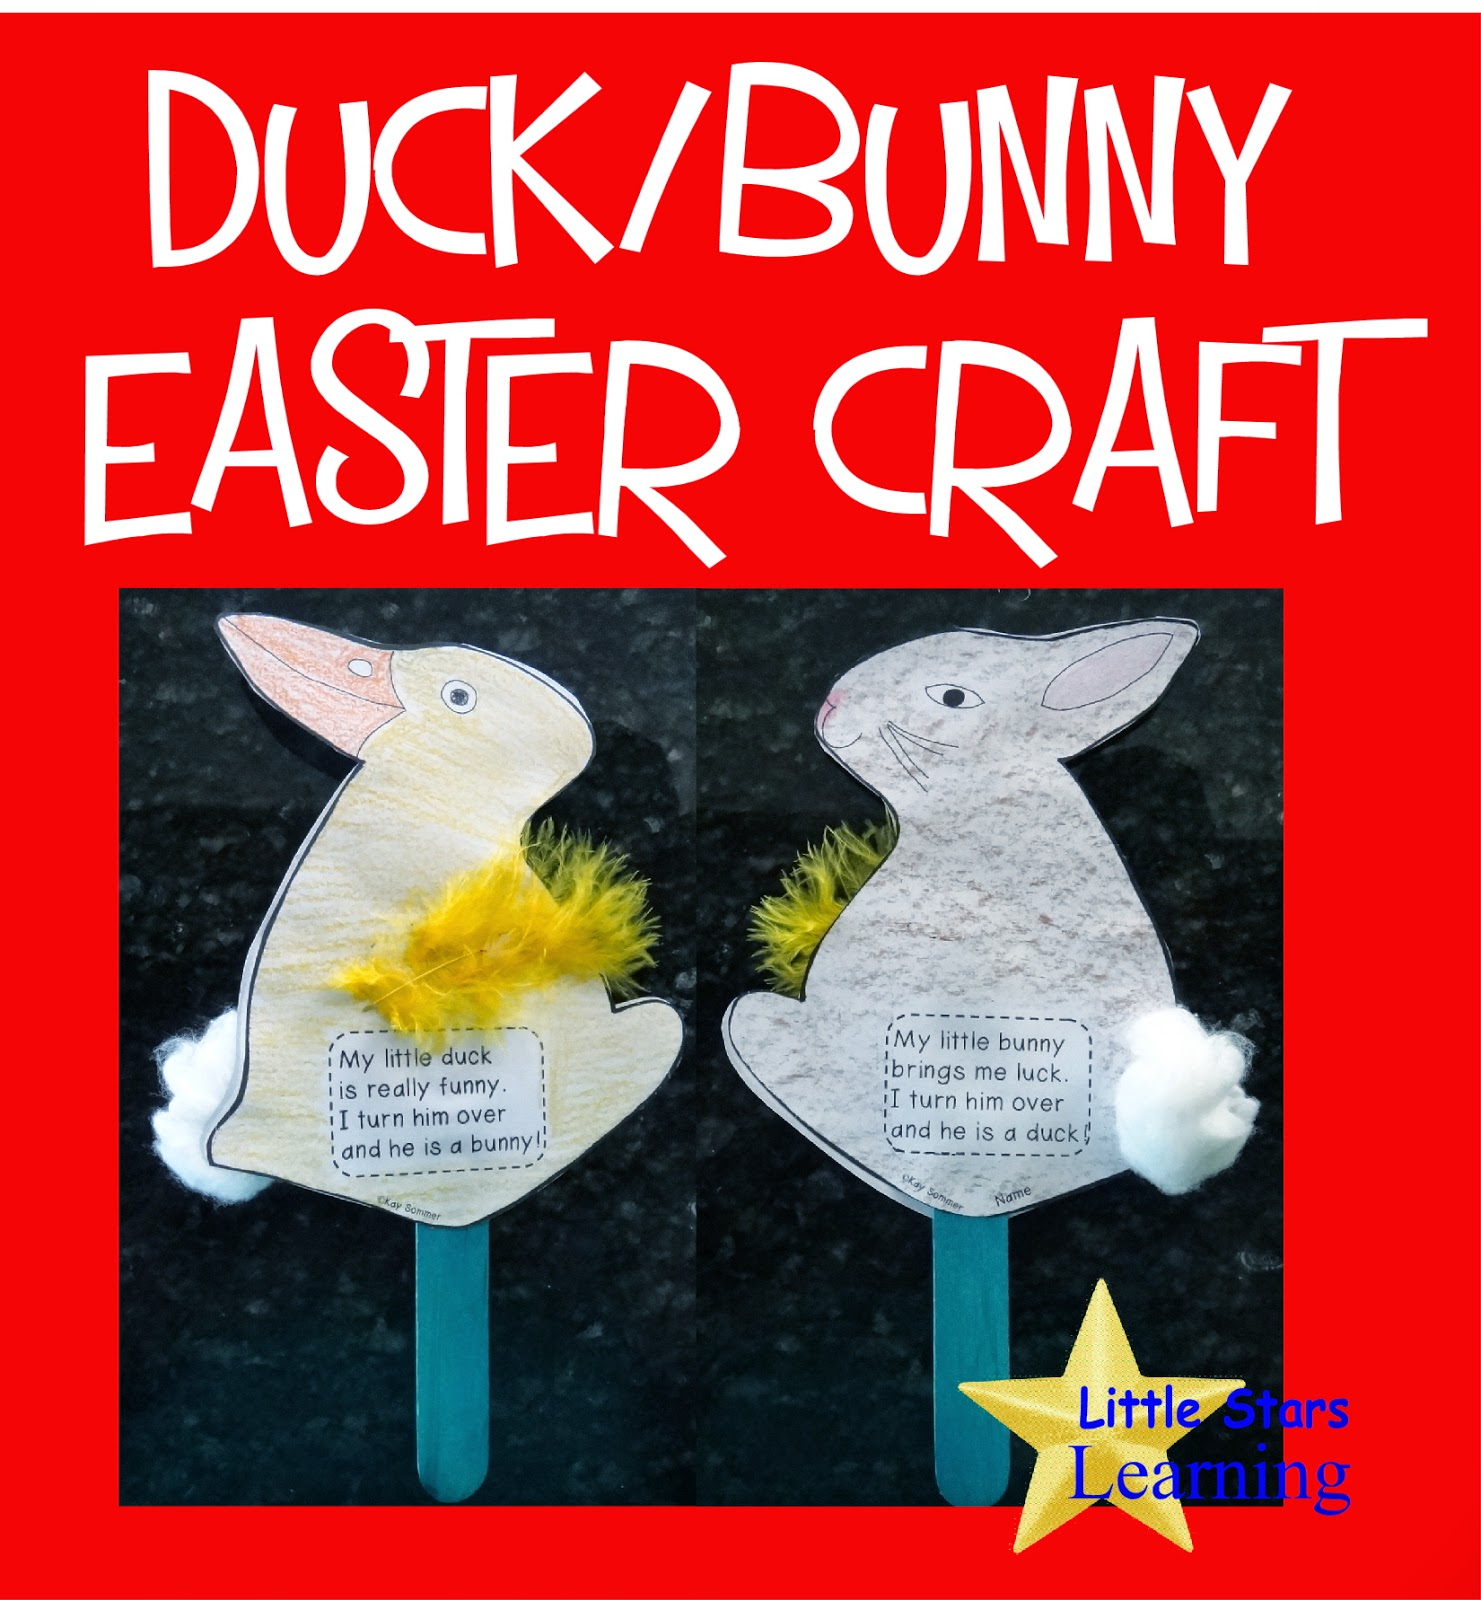 Little Stars Learning Duck Bunny Easter Preschool